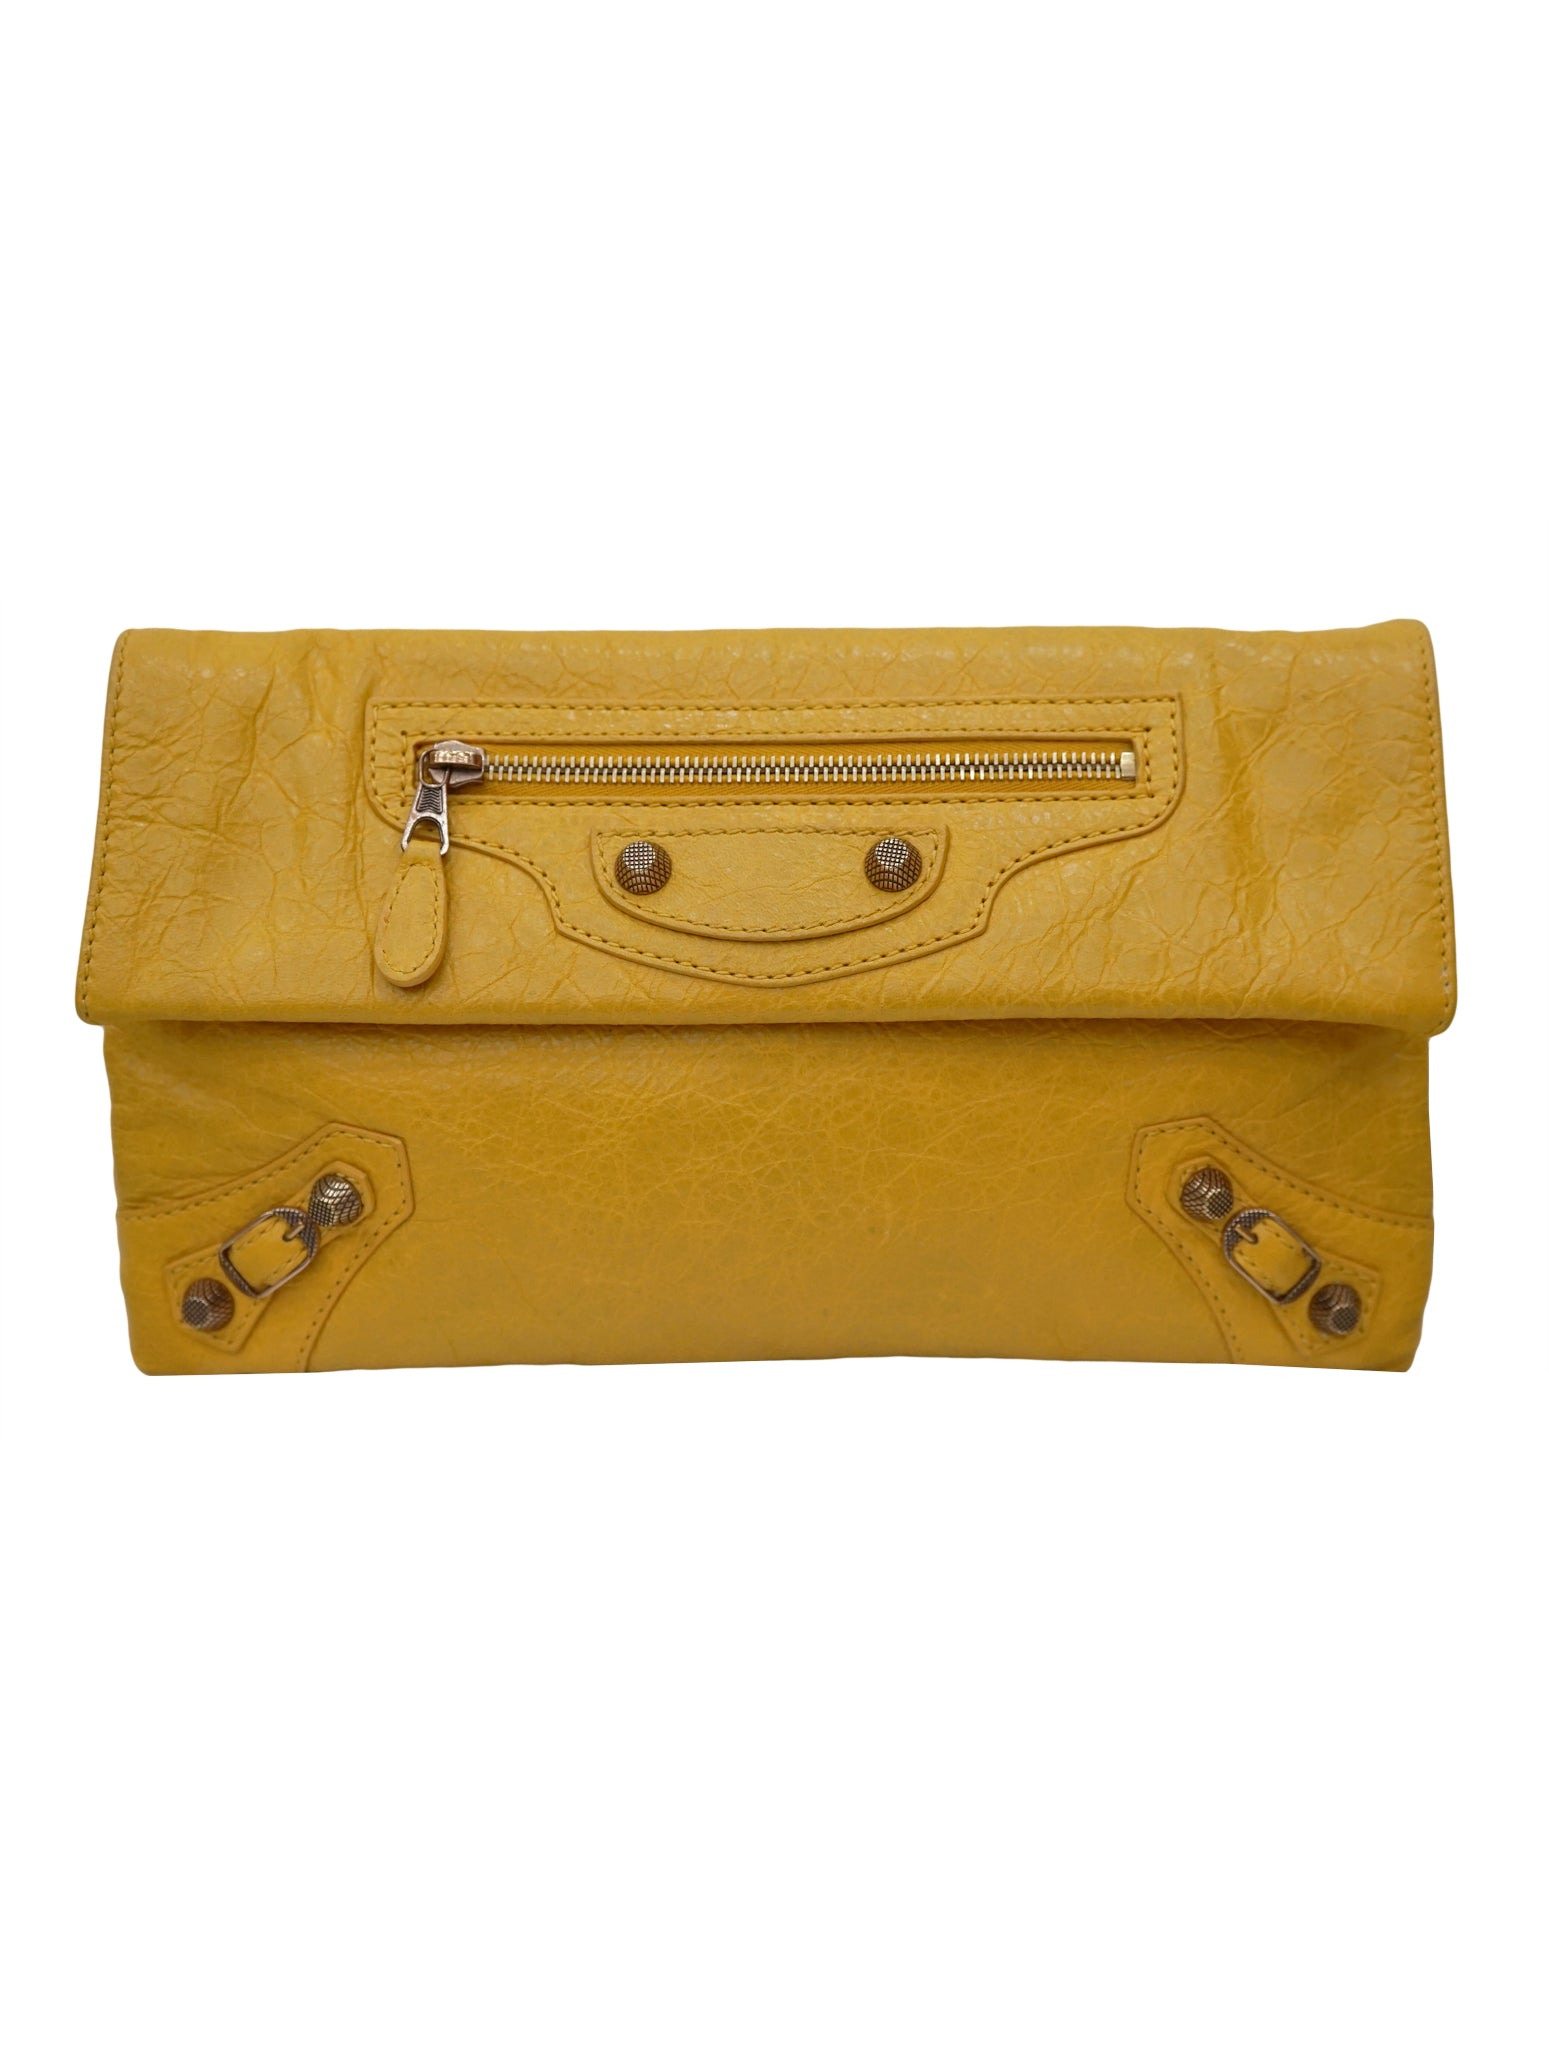 PROFOND LEATHER GSH ENVELOPE CLUTCH